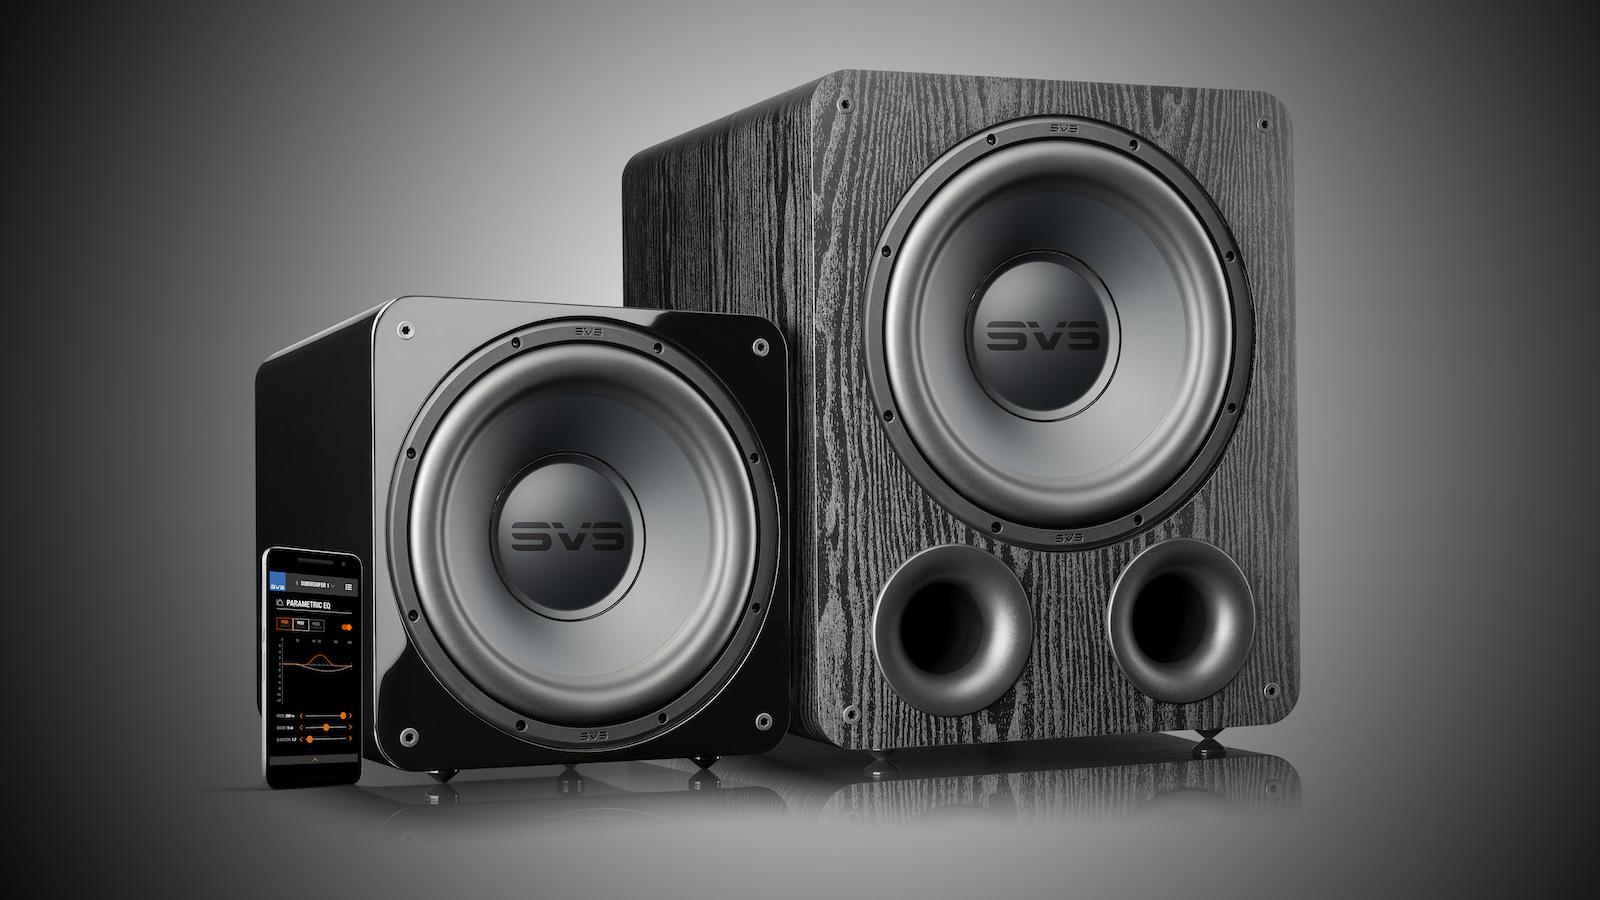 SVS SB-1000 Pro and PB-1000 Subwoofers with smartphone app